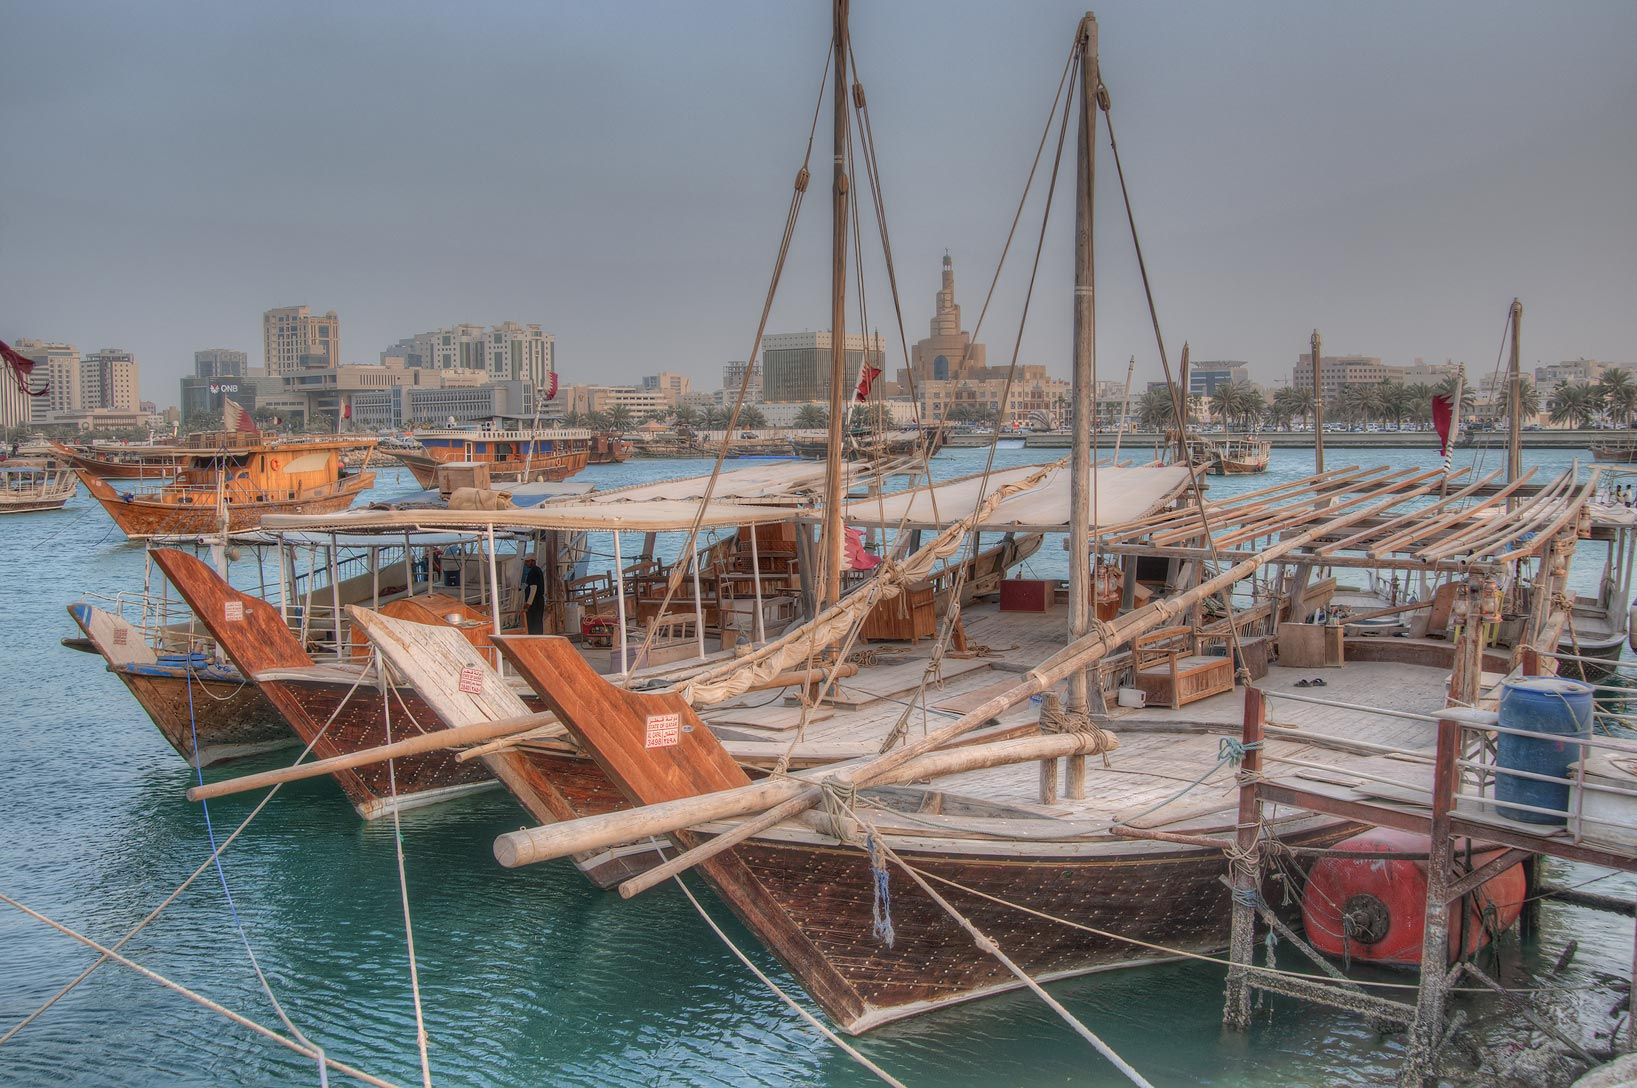 Dhow boats in fishing harbor. Doha, Qatar